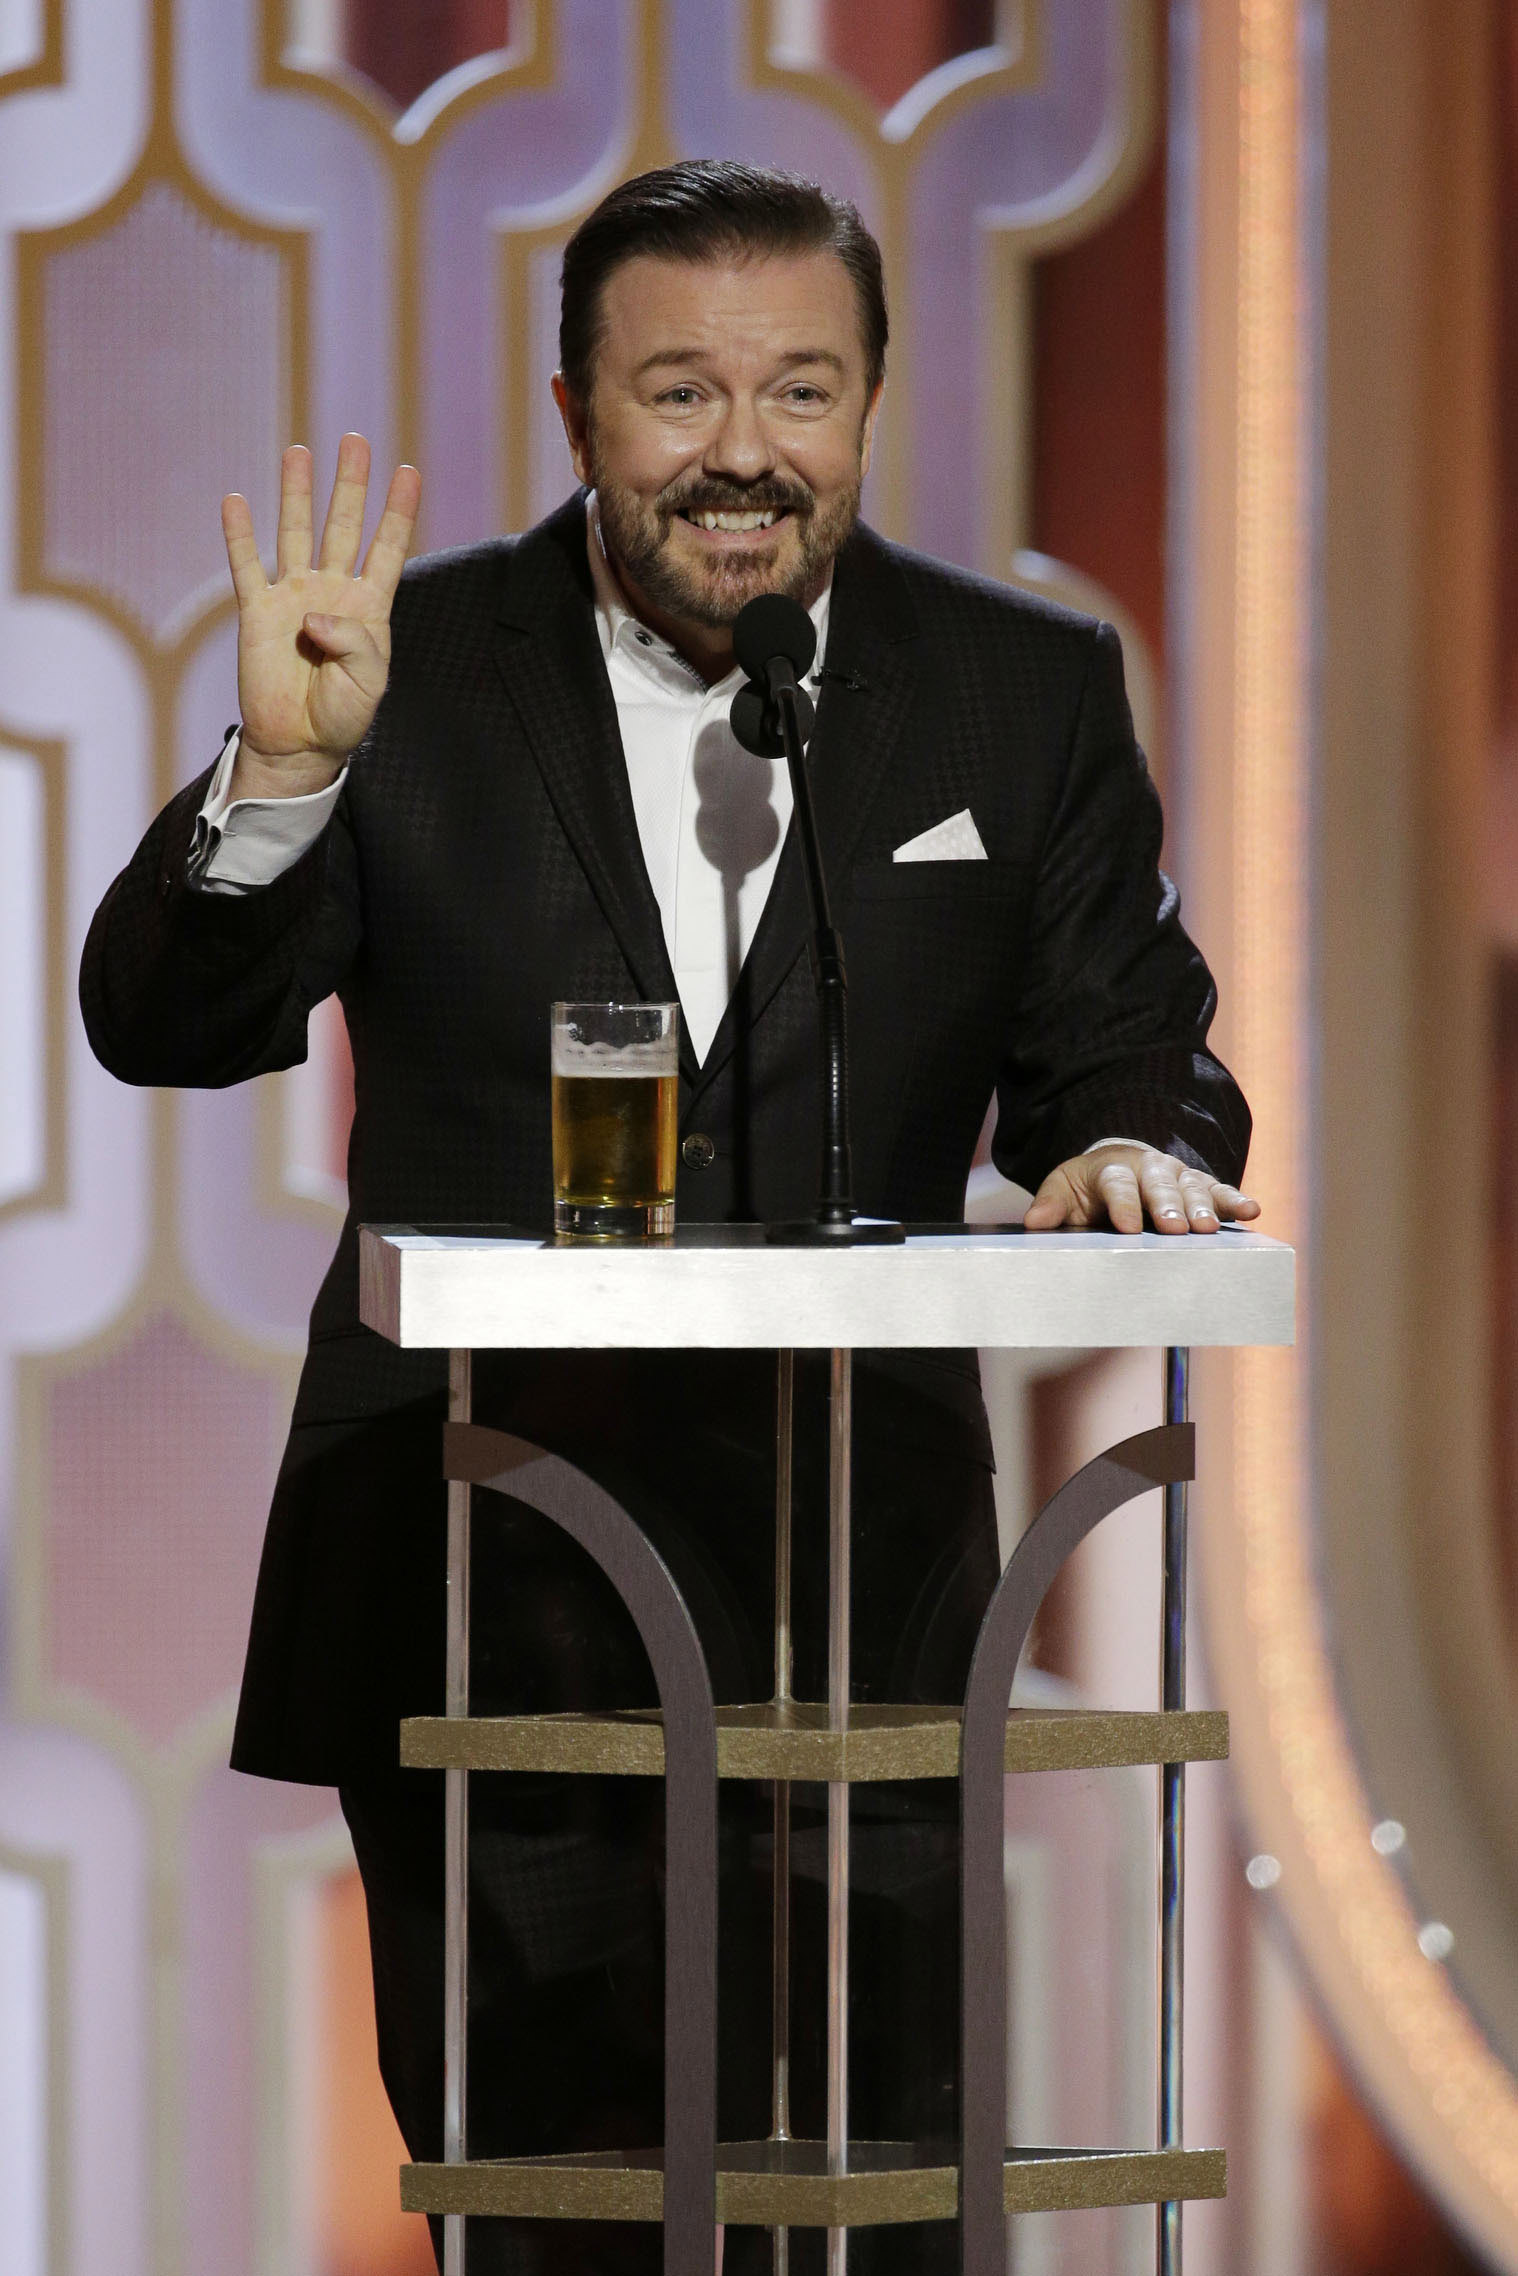 Host Ricky Gervais speaks onstage during the 73rd Annual Golden Globe Awards at The Beverly Hilton Hotel on January 10, 2016 in Beverly Hills, California. (Photo by Paul Drinkwater/NBCUniversal via Getty Images)